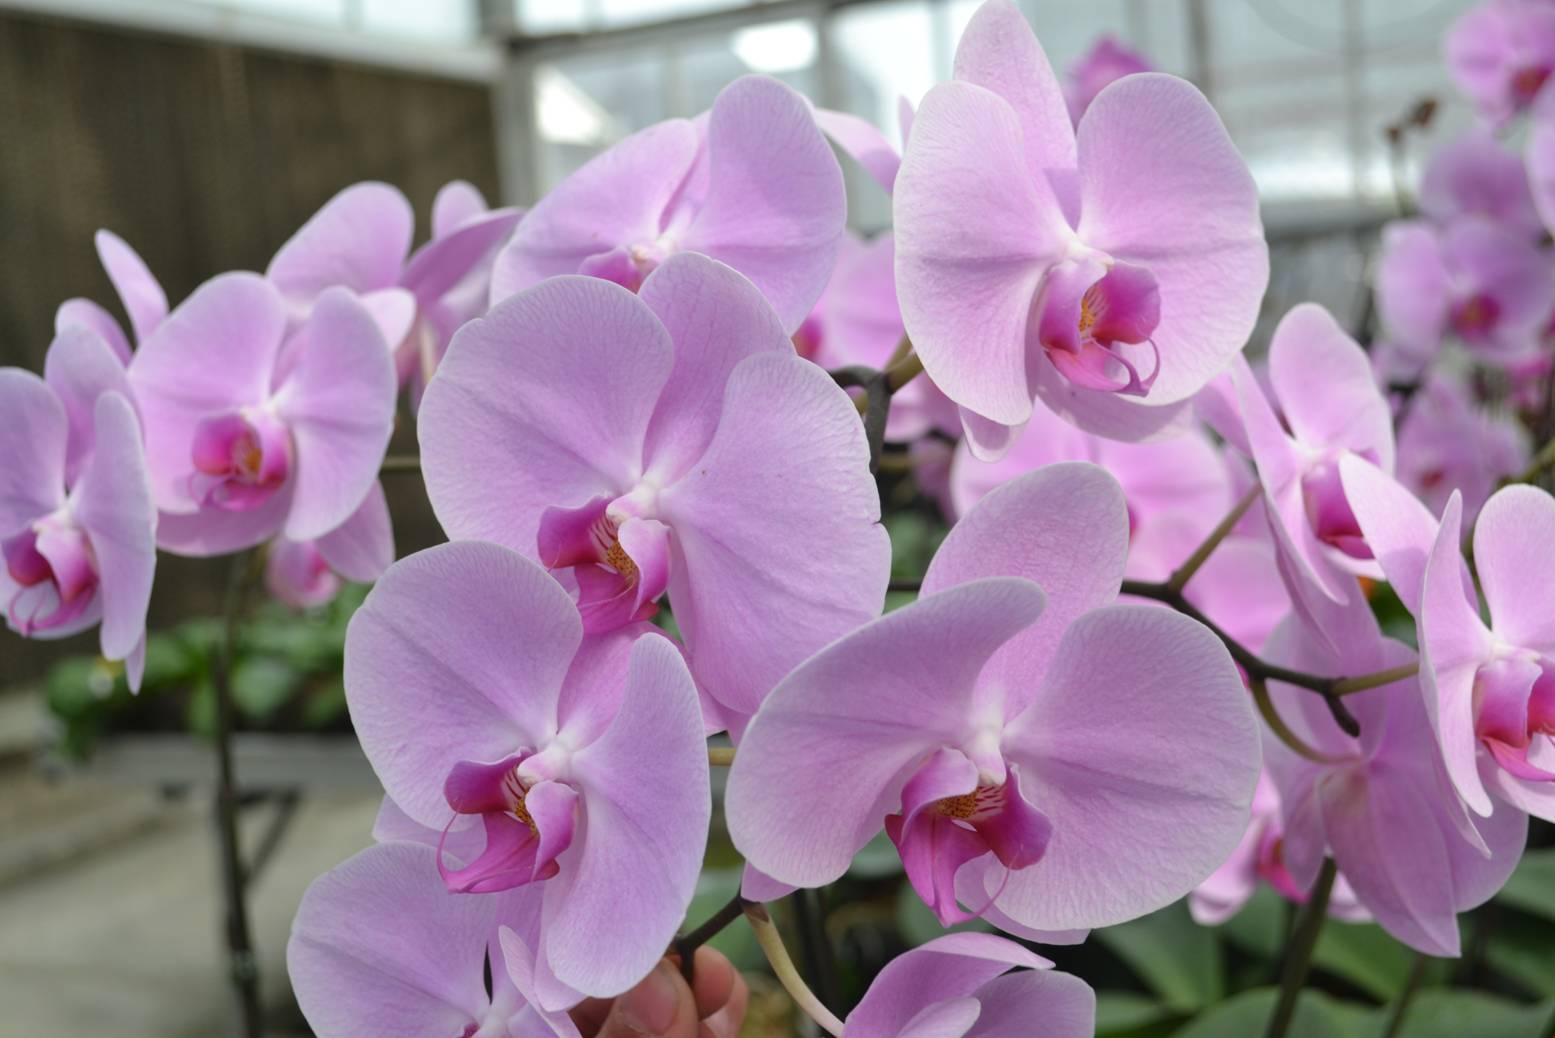 High quality orchids by using the rice straw based growing medium